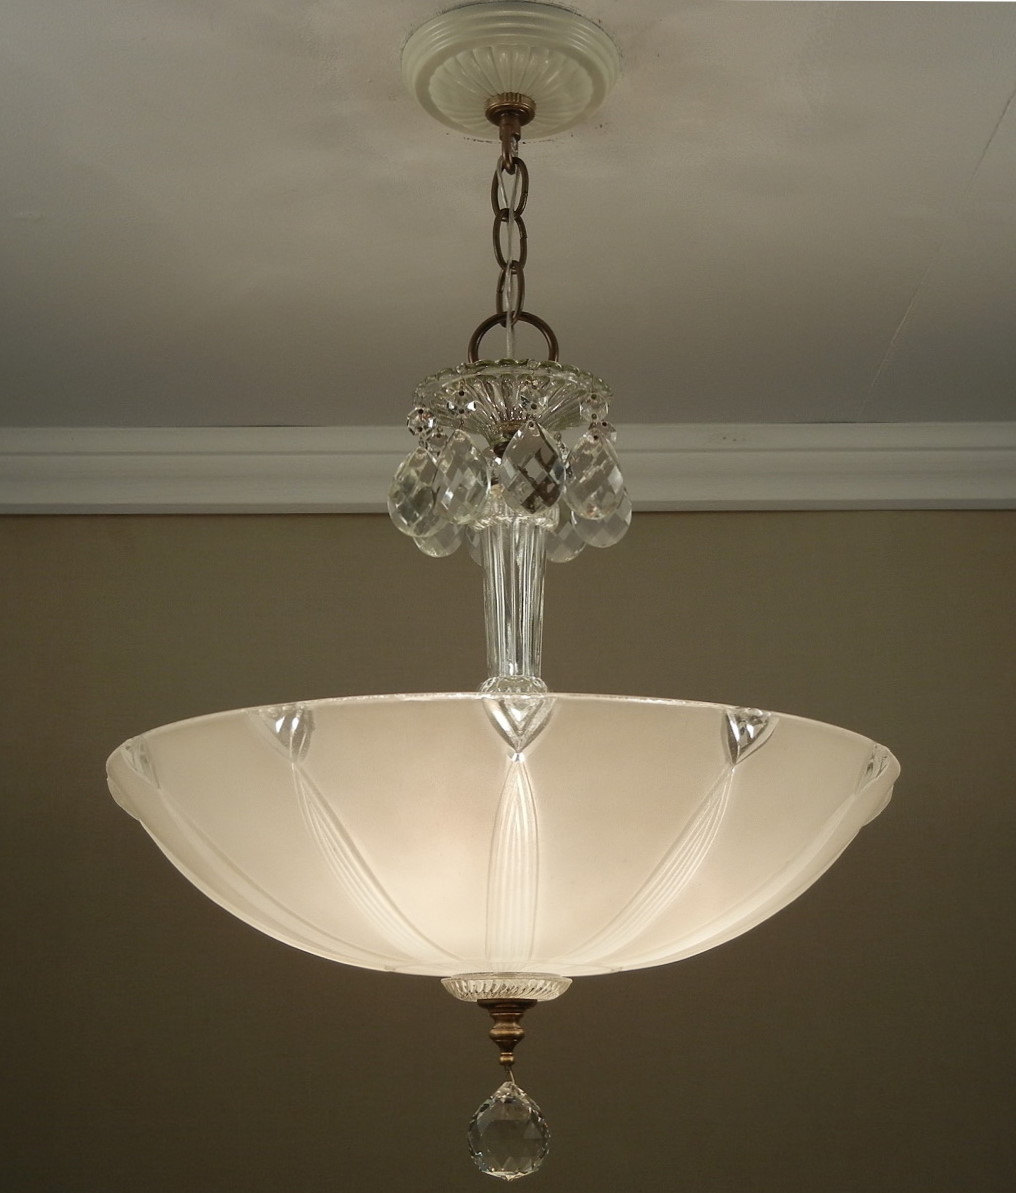 1920s bathroom light fixtures antique ceiling lights 10 reasons to buy warisan lighting 15263